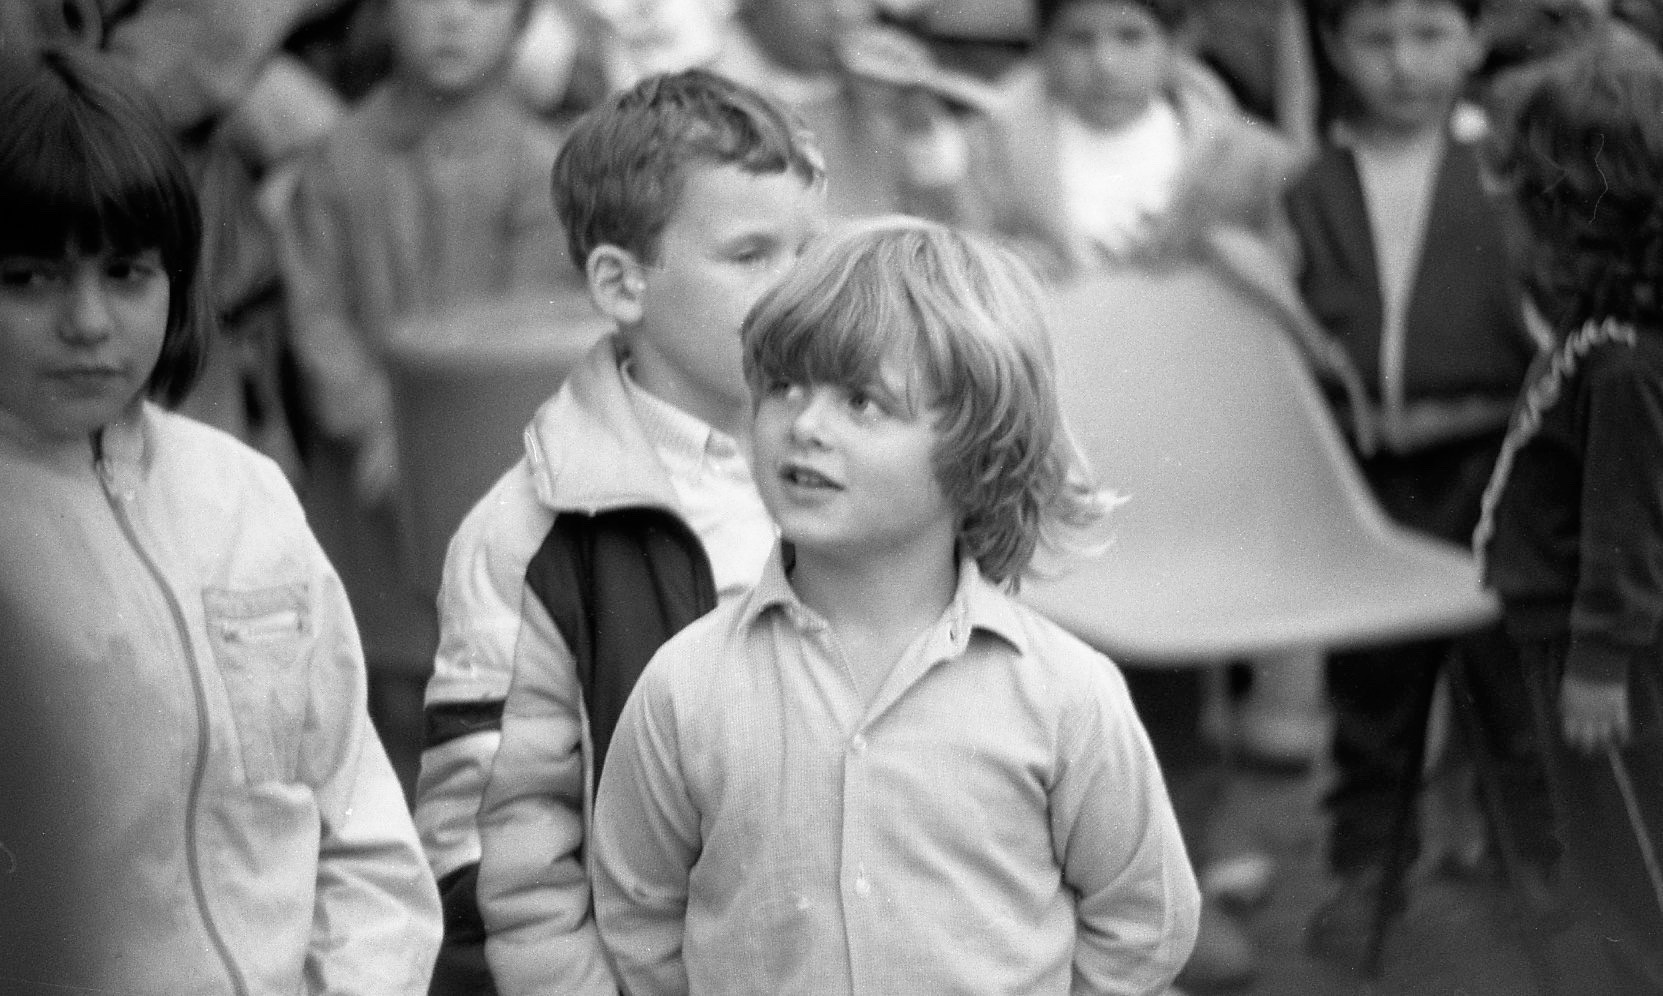 Sam in Punch and Judy crowd